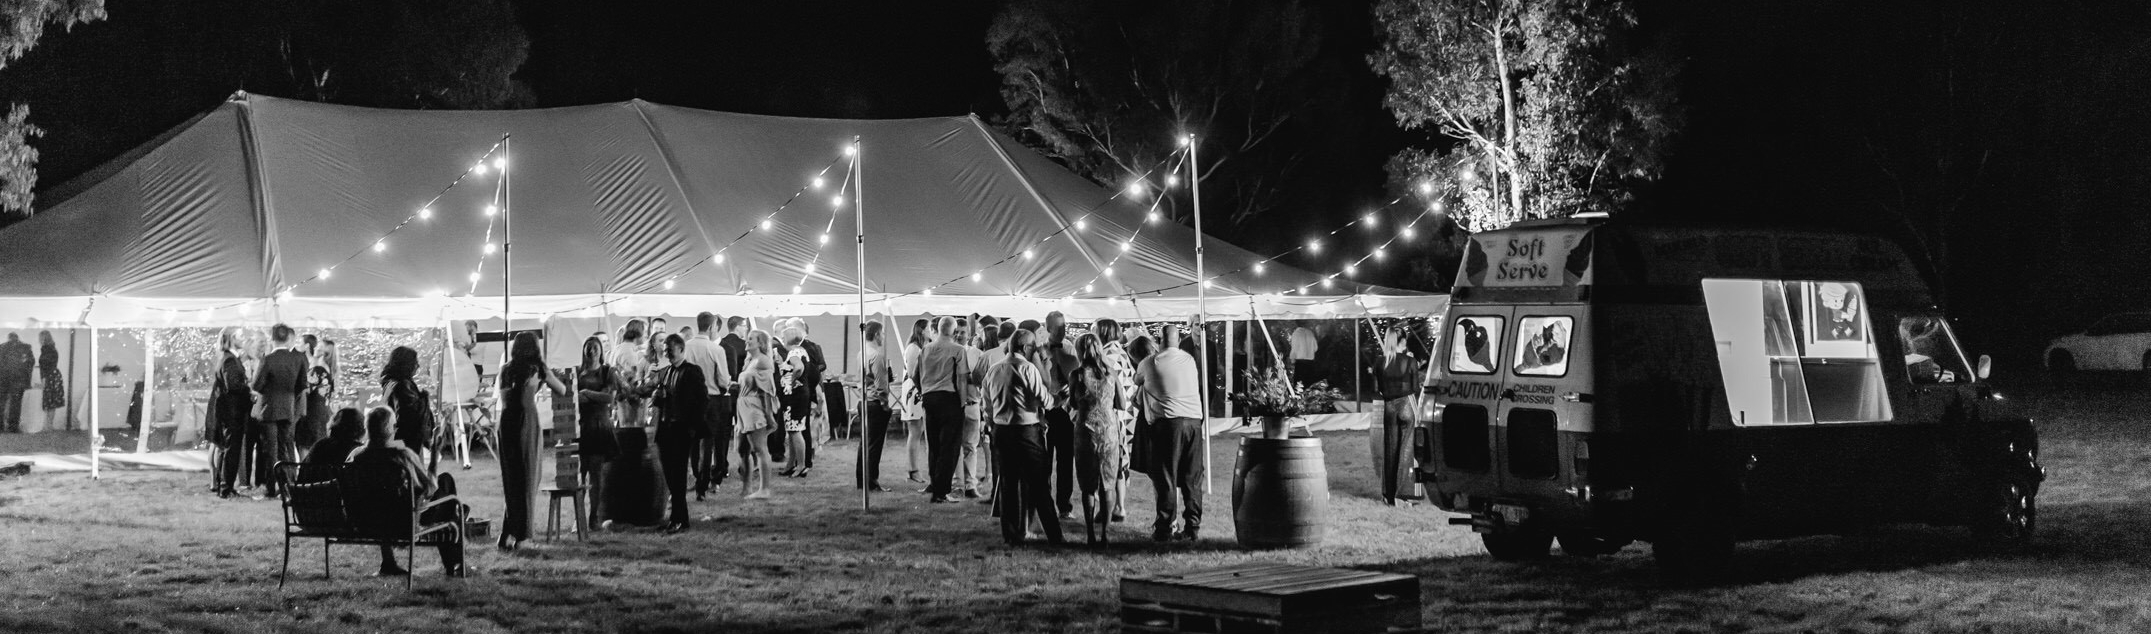 Peg & Pole marquee Warrnambool PArty HIre.jpg